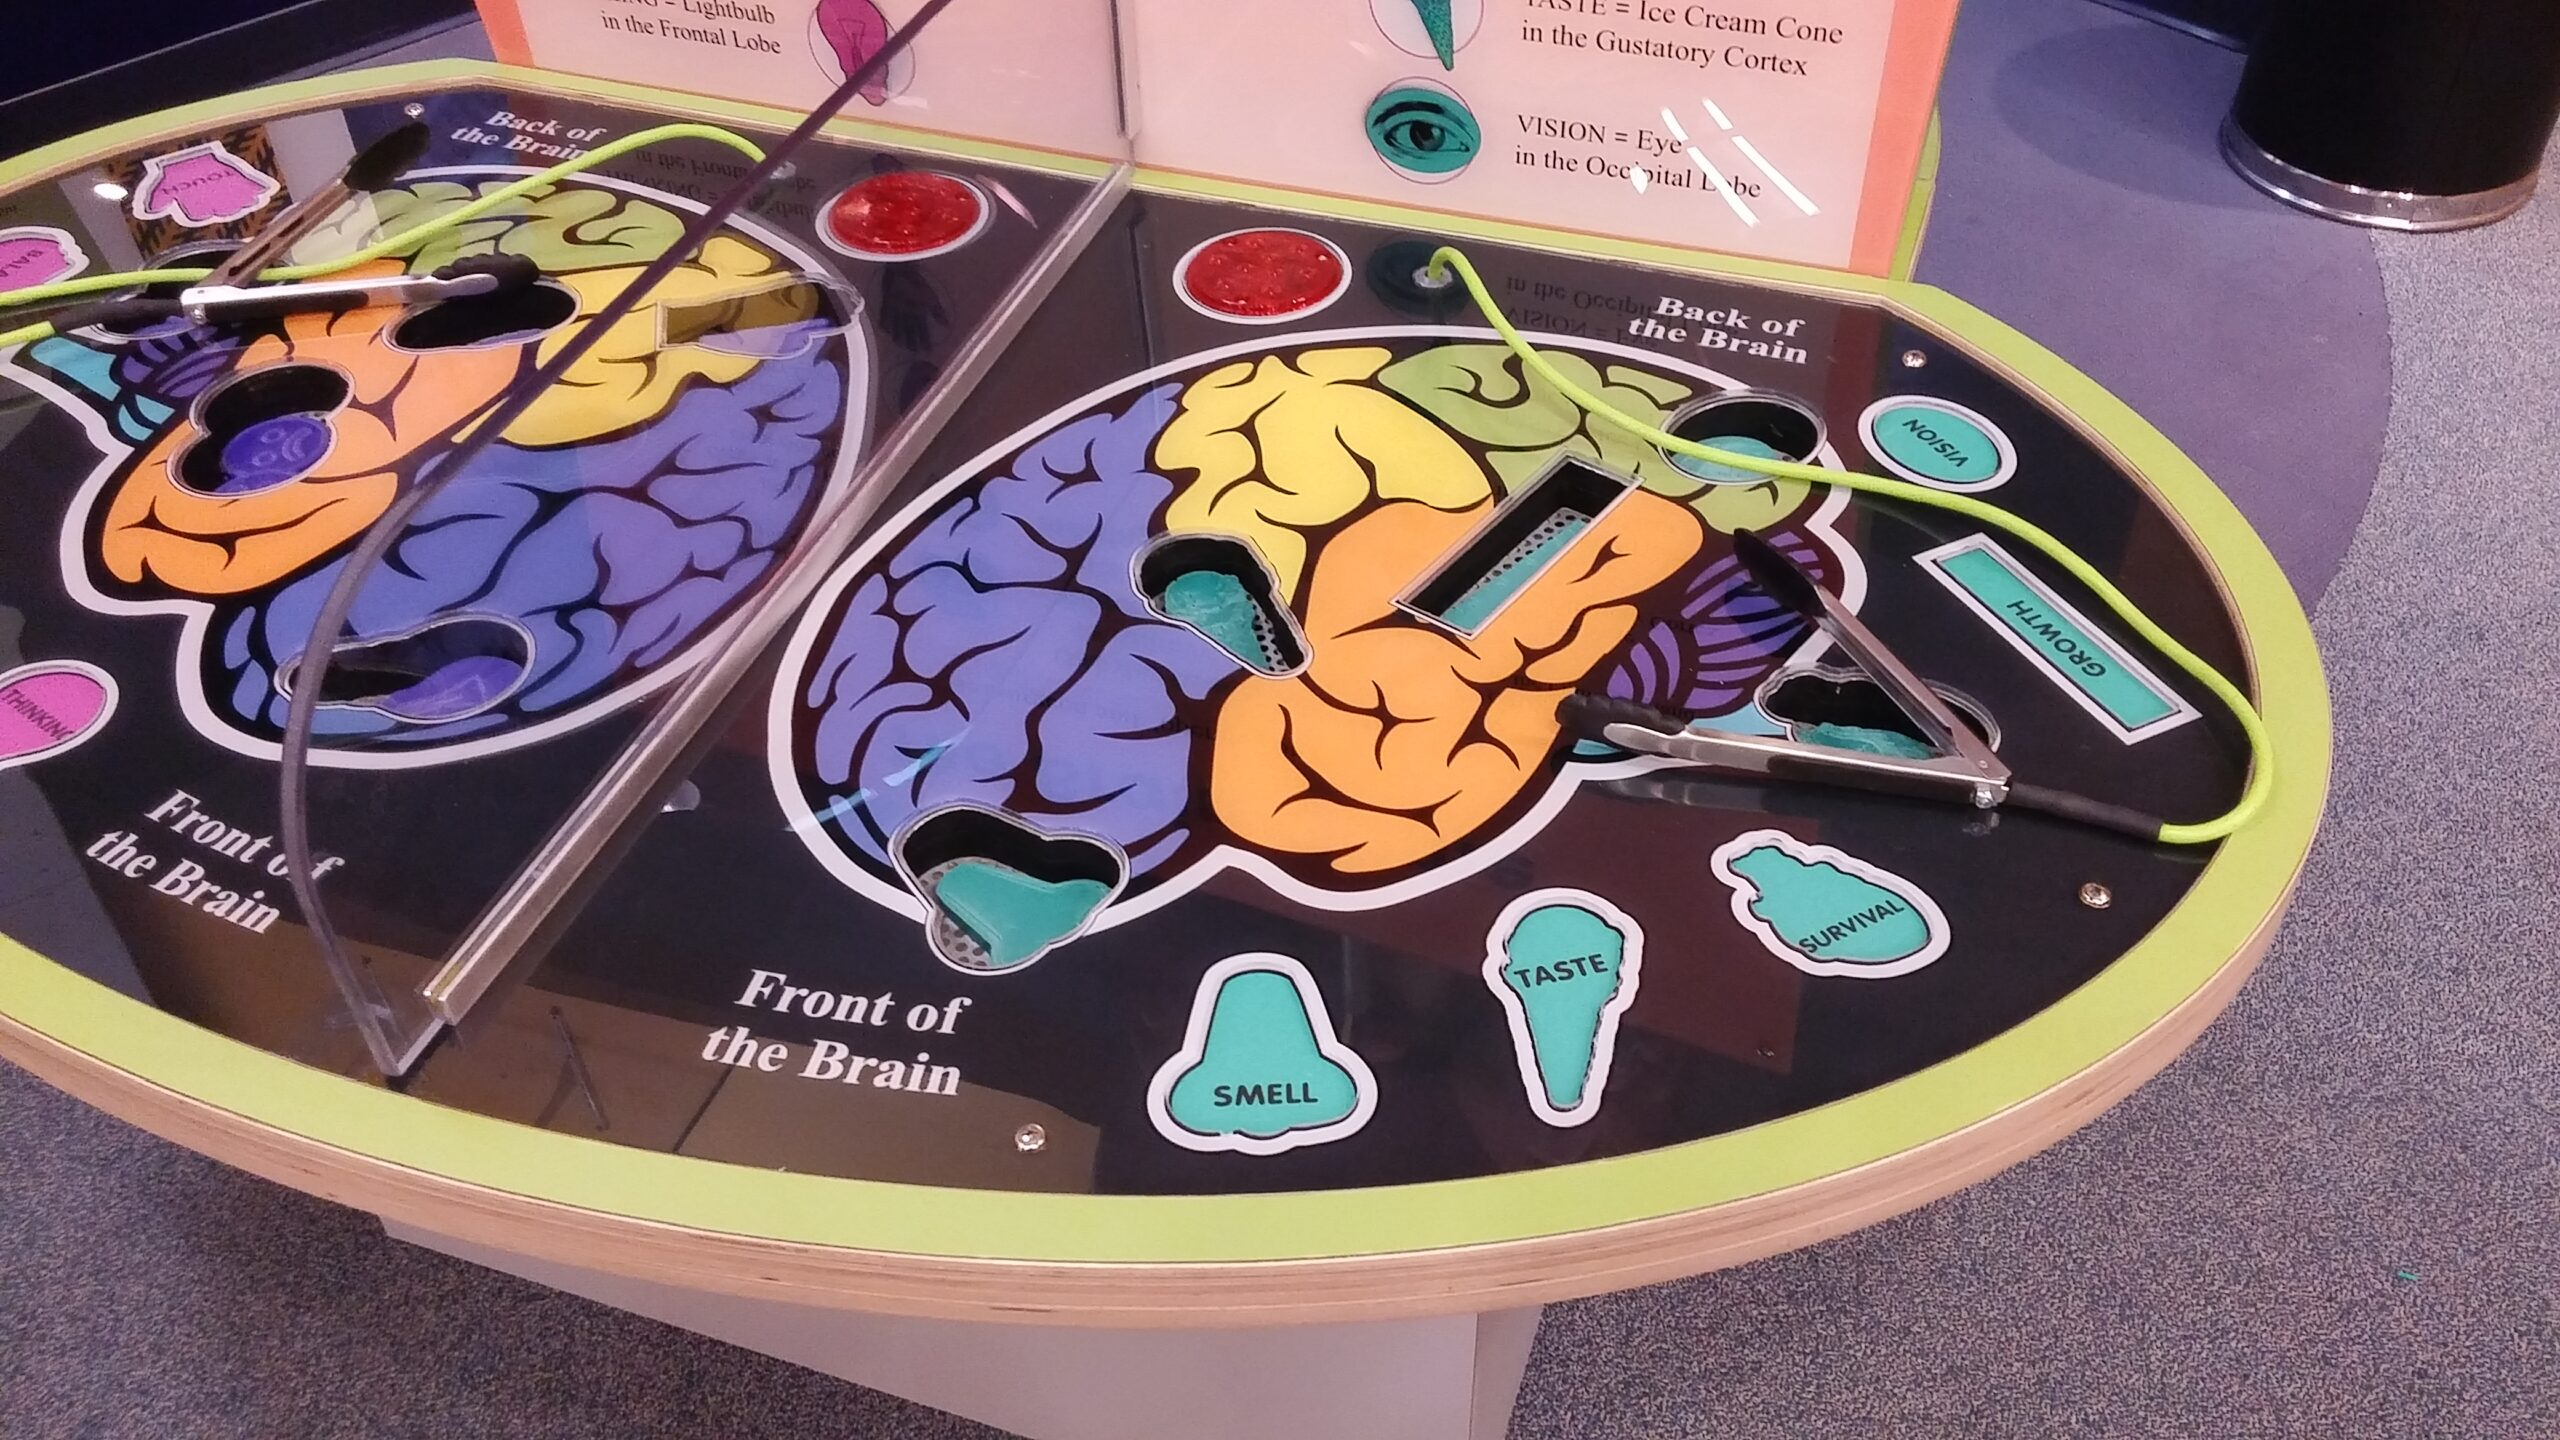 Detail of Brain Operation Game.